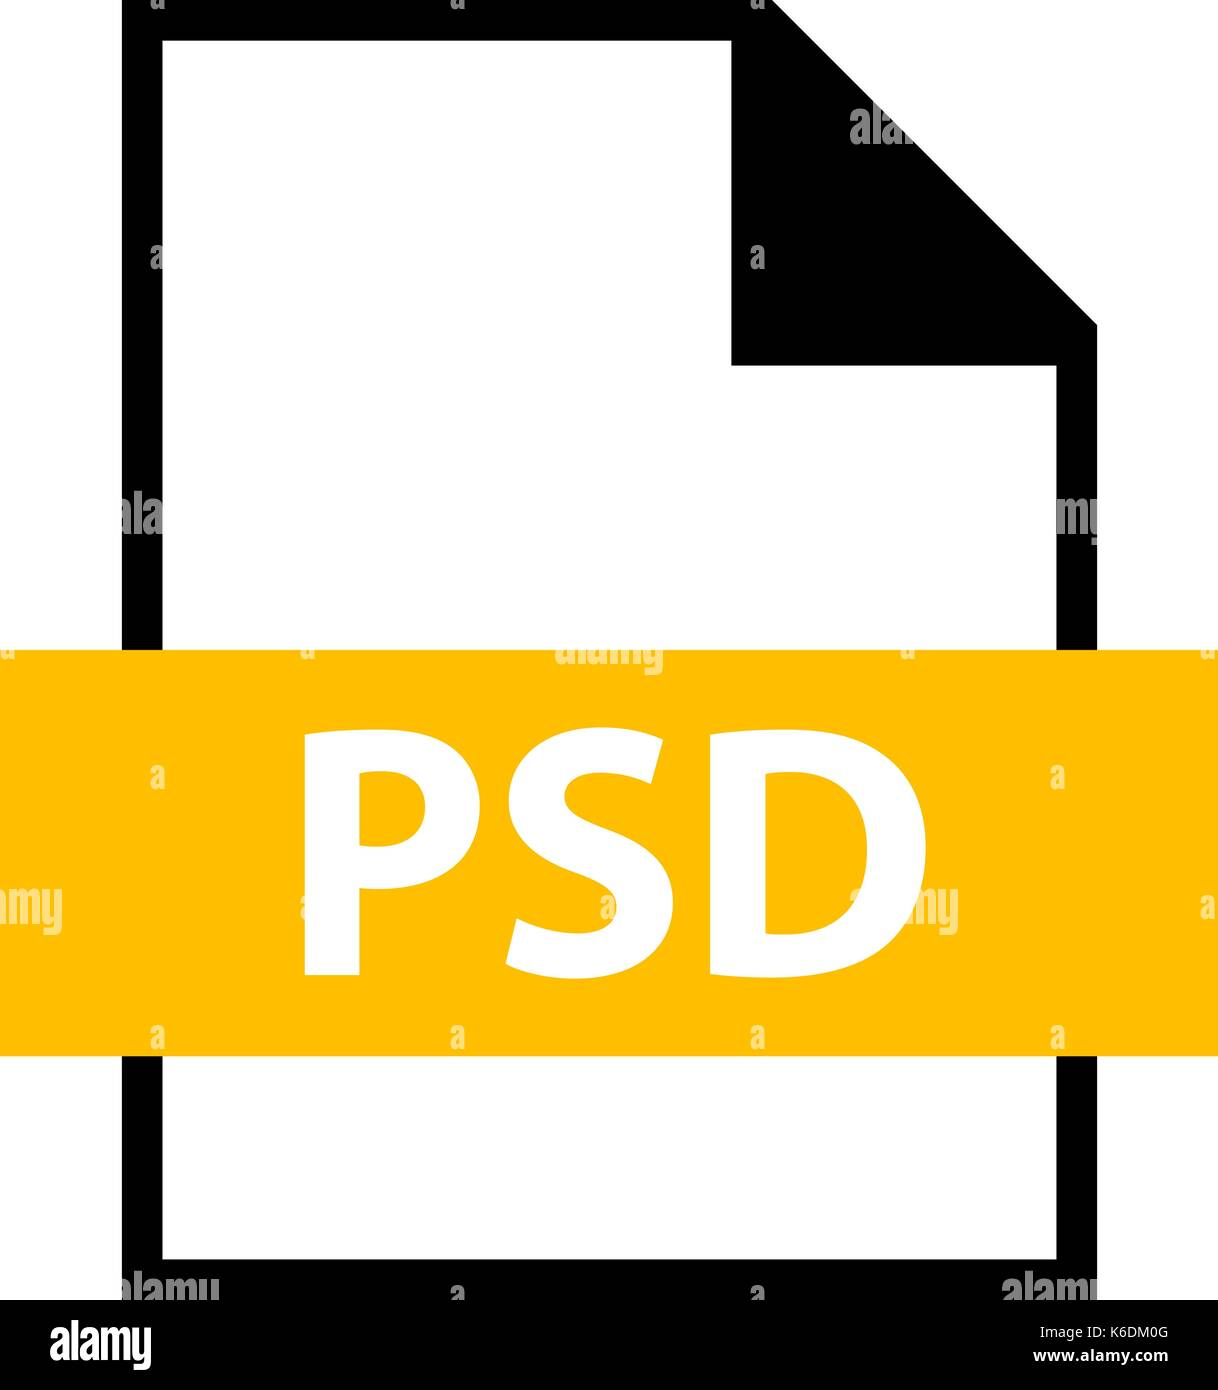 Use it in all your designs. Filename extension icon PSD PhotoShop Document in flat style. Quick and easy recolorable shape. Vector illustration a grap - Stock Image